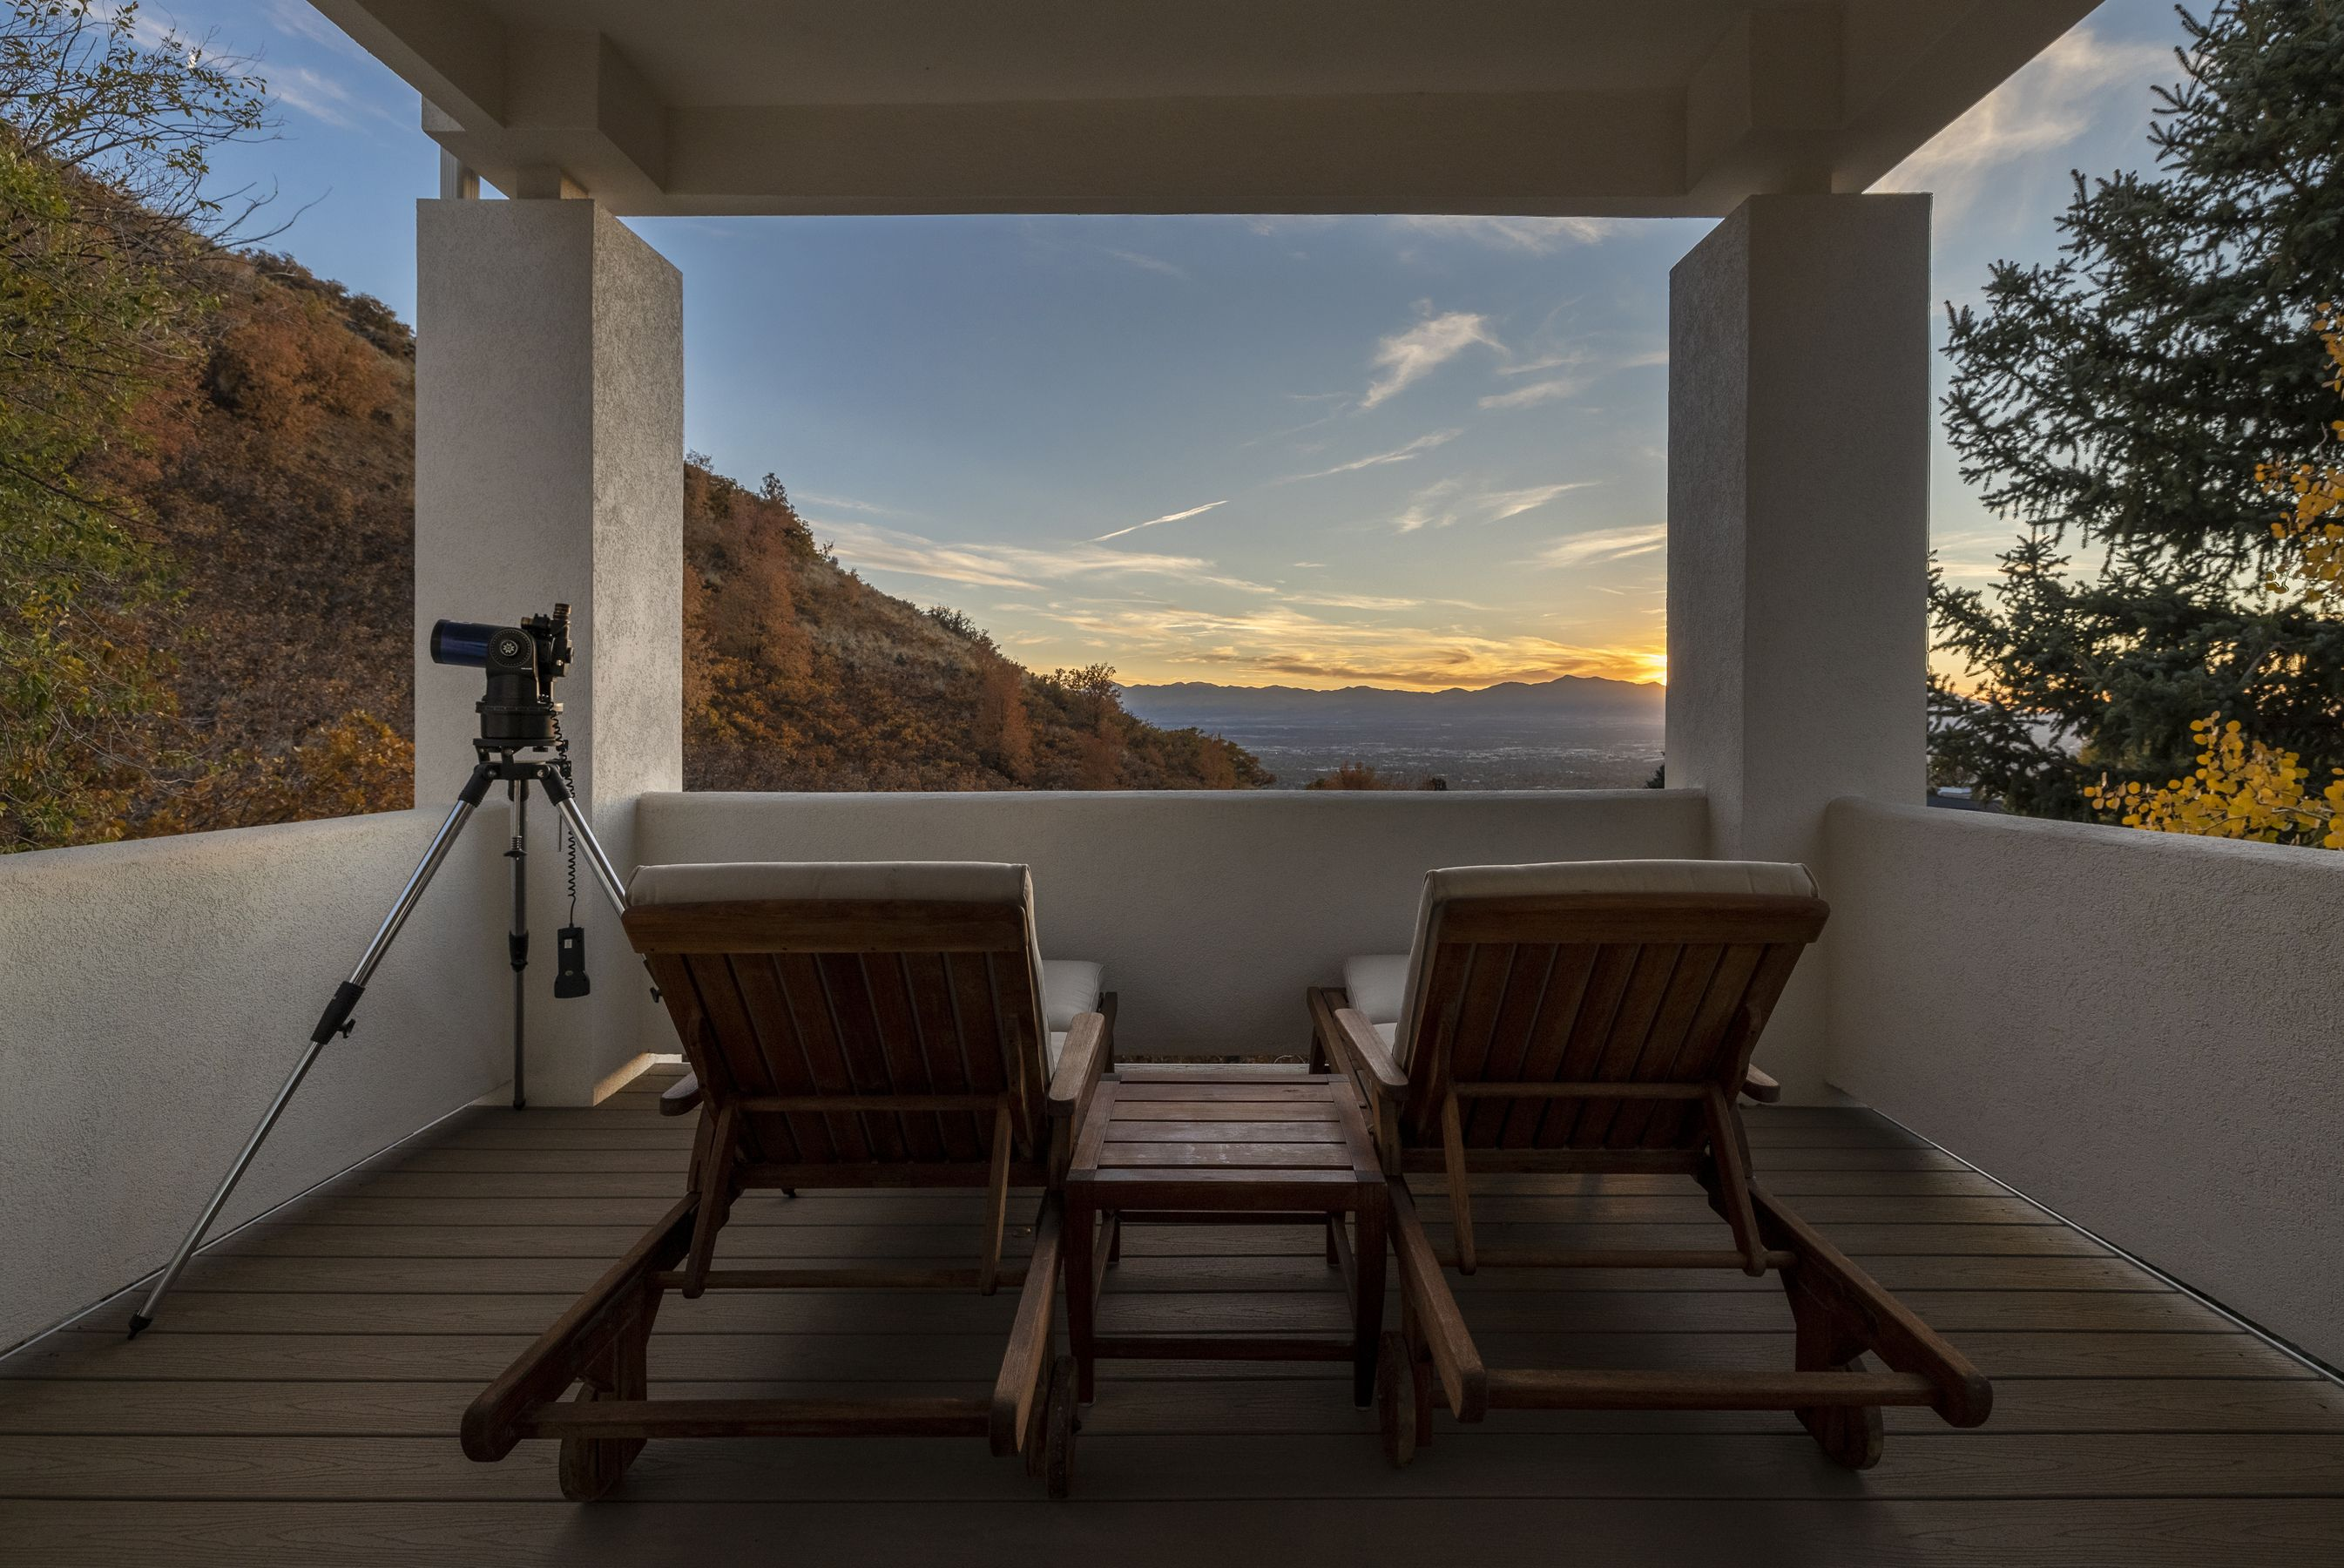 Relax after a long day to the peaceful sunset over the Salt Lake Valley, with a perspective that includes Downtown, the Great Salt Lake, and both the Wasatch and Oquirrh mountain ranges. #WindermereUtah #Sunset #Patio #Balcony #Deck #UtahHomes #DreamHome #LuxuryLiving #Luxury #HomeDesign #HomeDecor #Views #OutdoorLiving #OutdoorFurniture #Utah